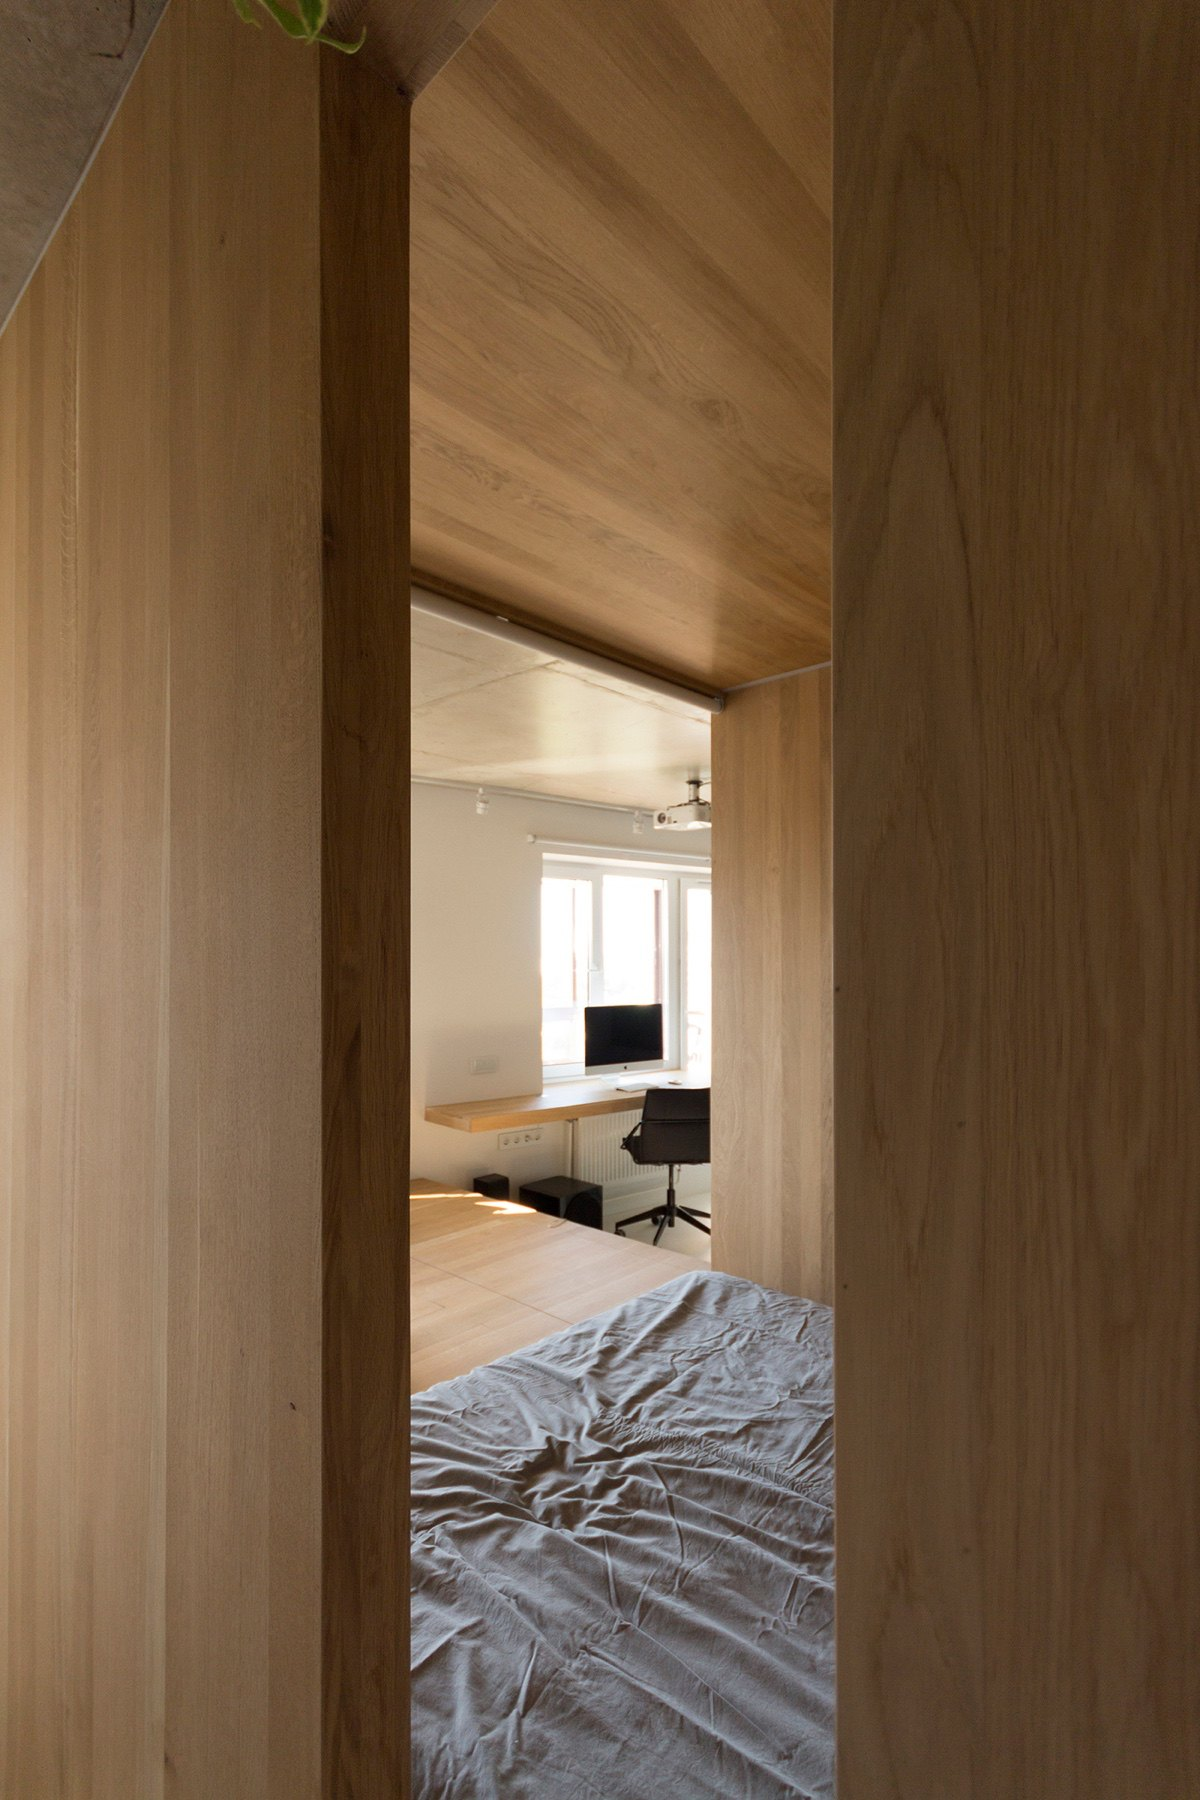 View Through Inside Window Minimalist Bedroom Grey Bedding Light Wood - Super small studio apartment under 50 square meters includes floor plan